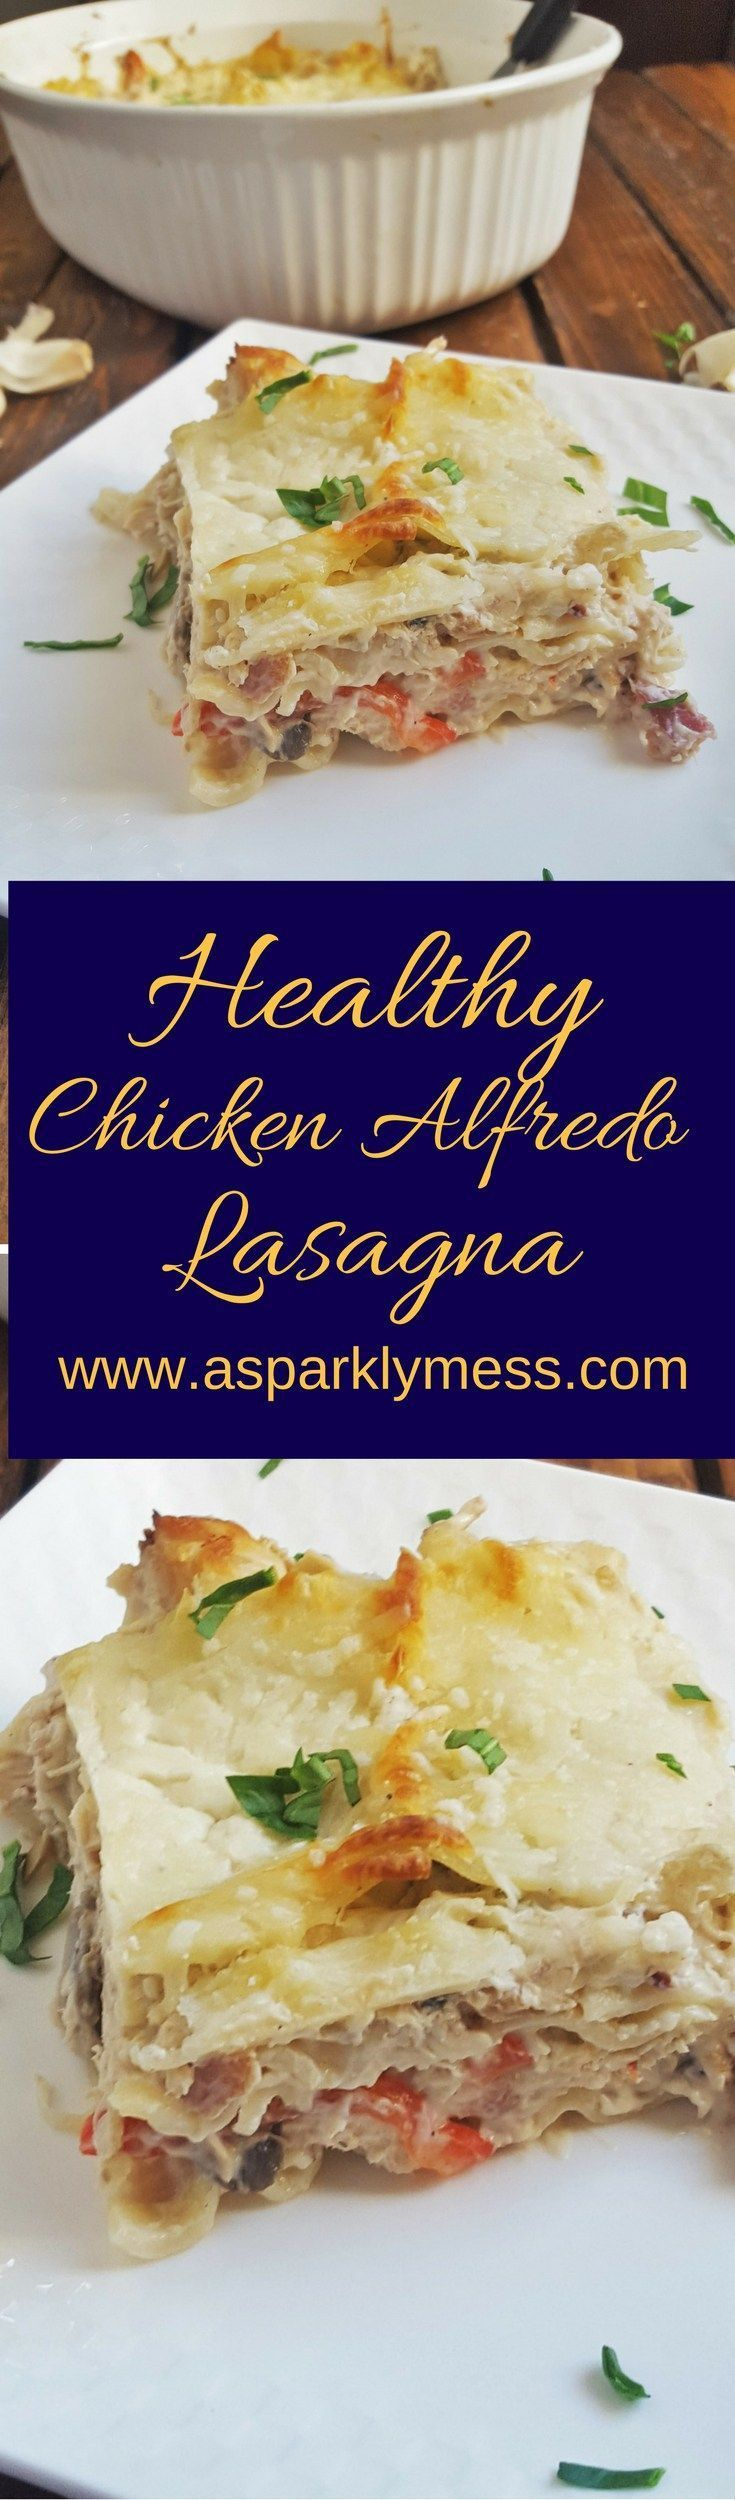 Healthy Chicken Alfredo Lasagna